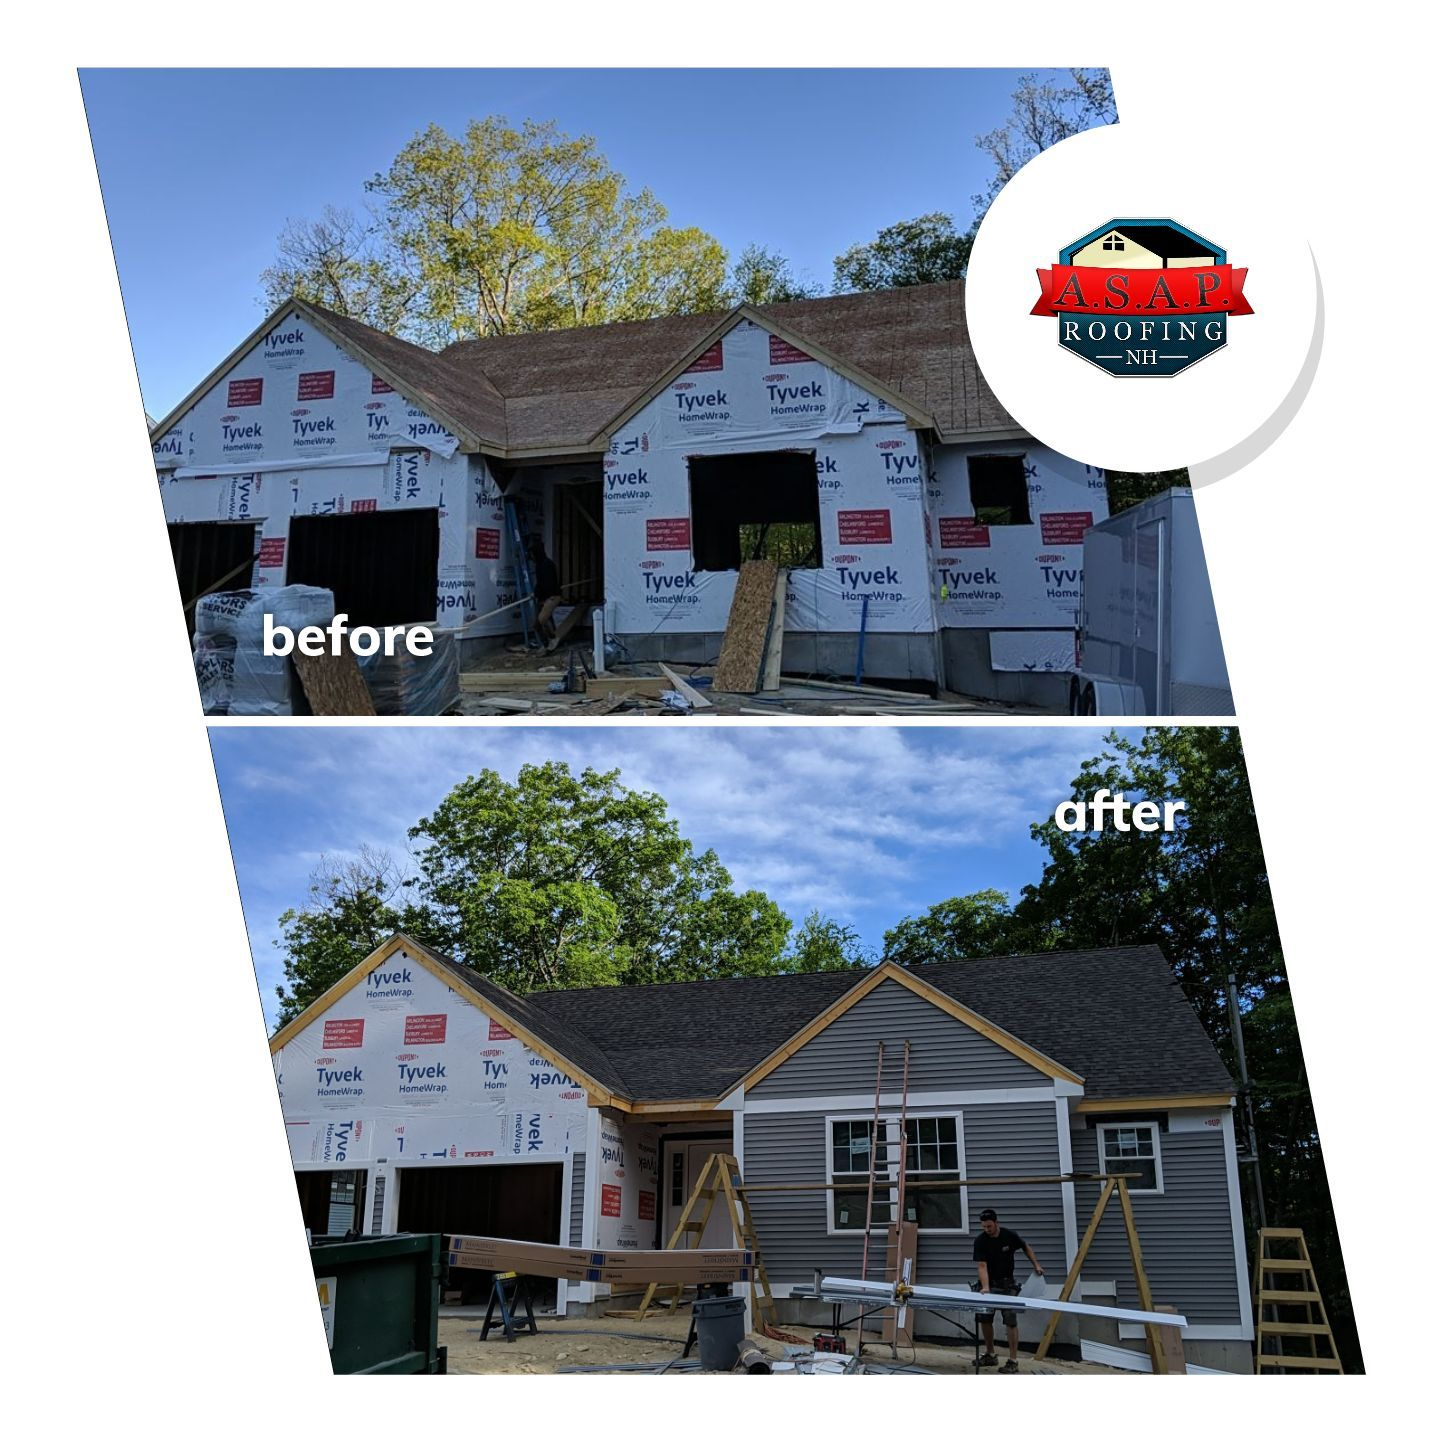 Residential Roofing, New Construction in Milford NH